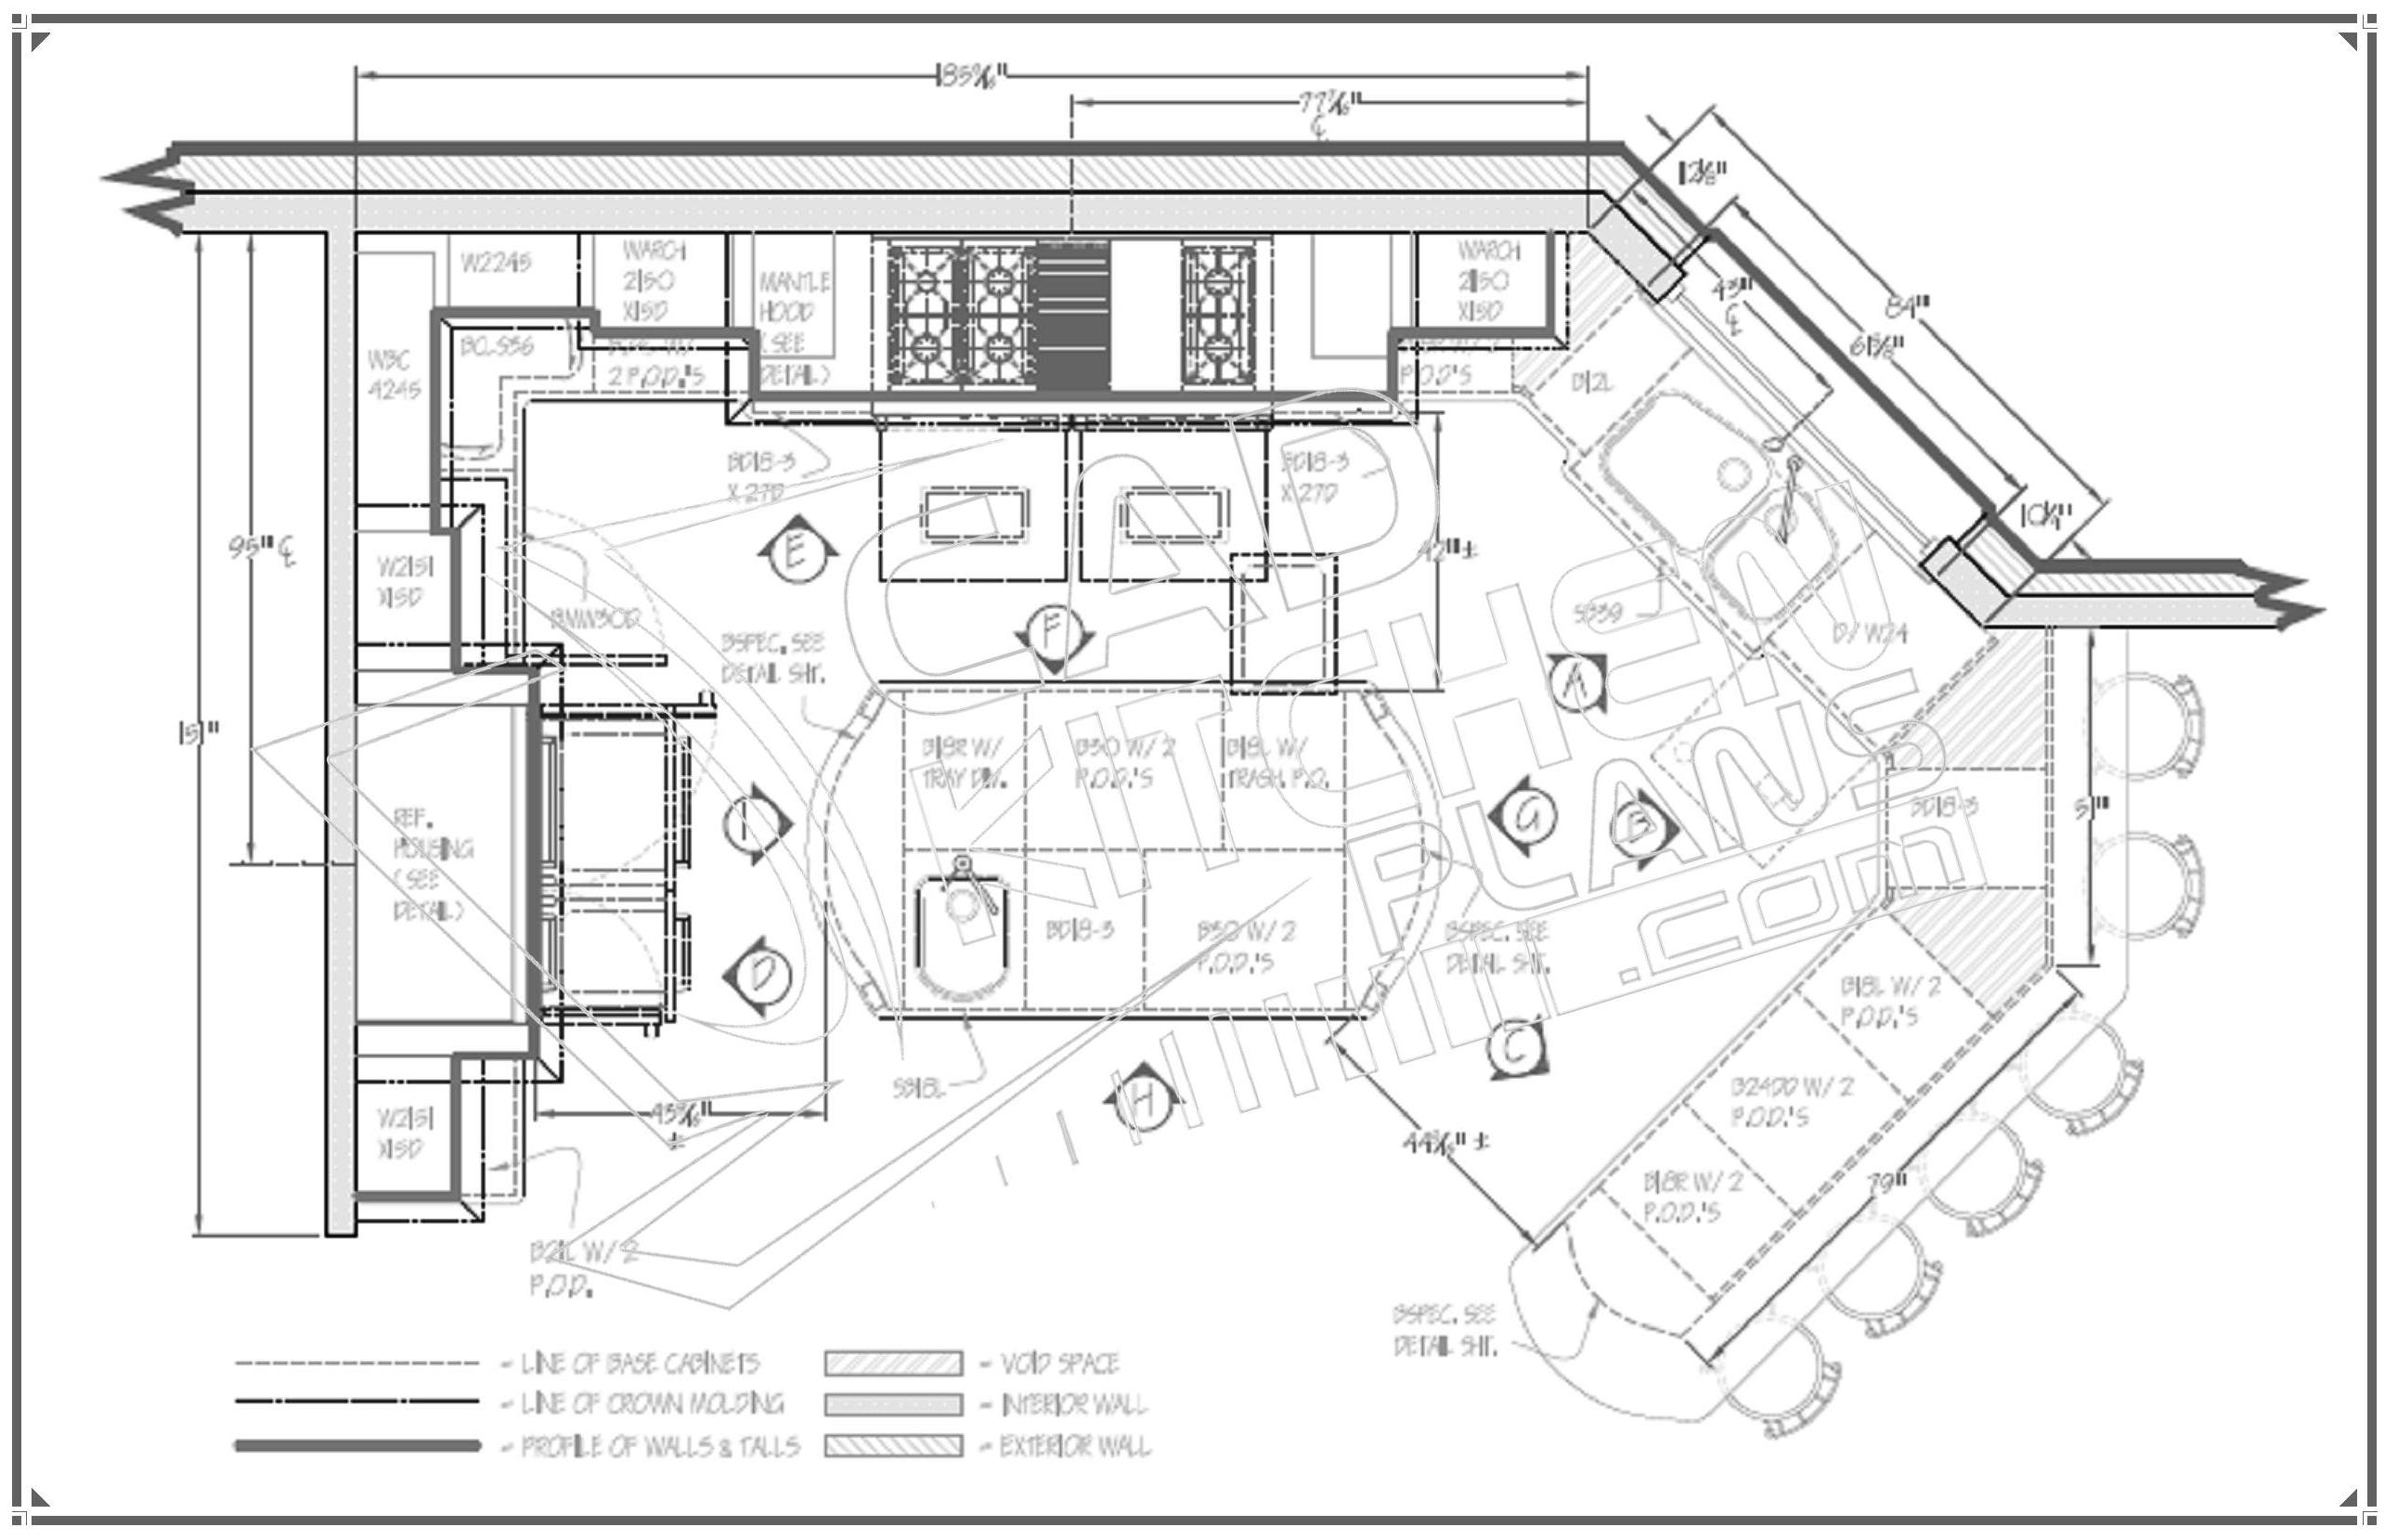 Kitchen floor plans kris allen daily - Plan floor design ...